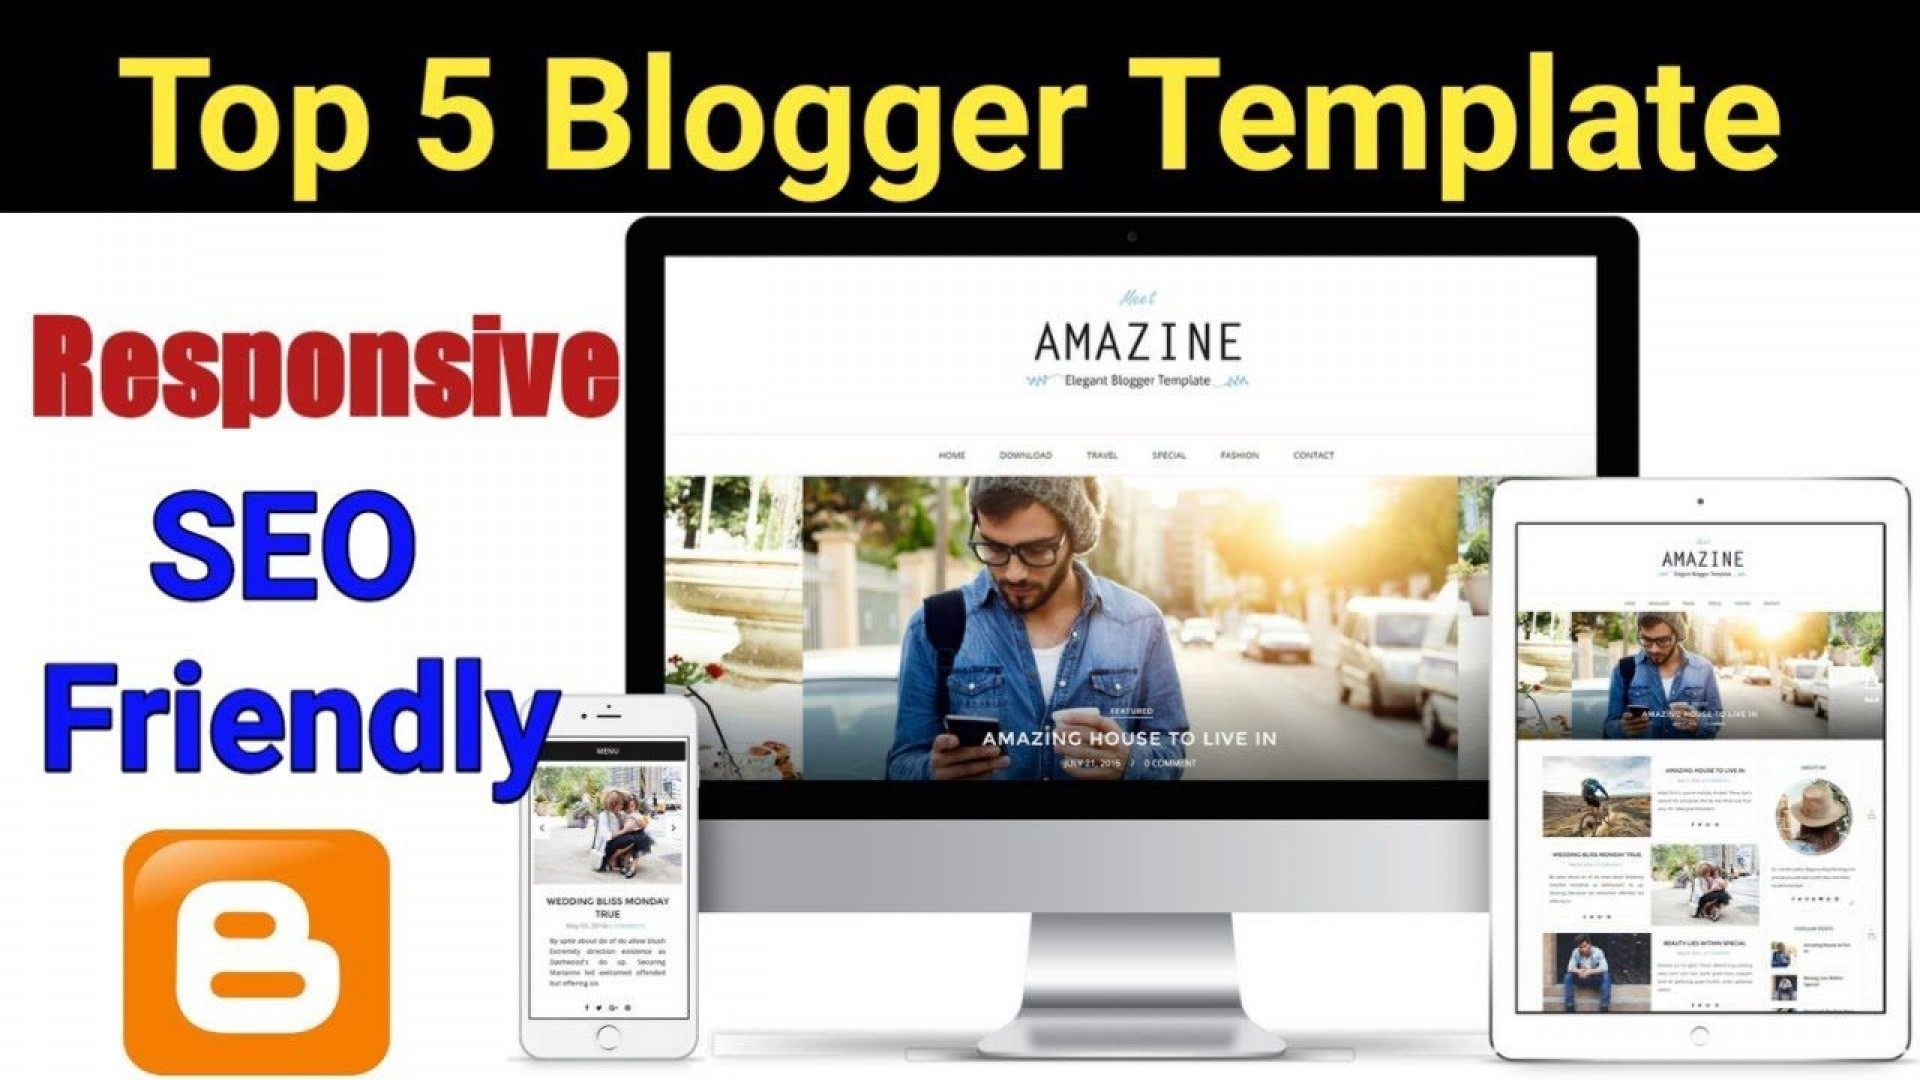 001 Excellent Best Free Responsive Blogger Theme Example  Themes Wordpres Blog Mobile Friendly Top Template 20201920